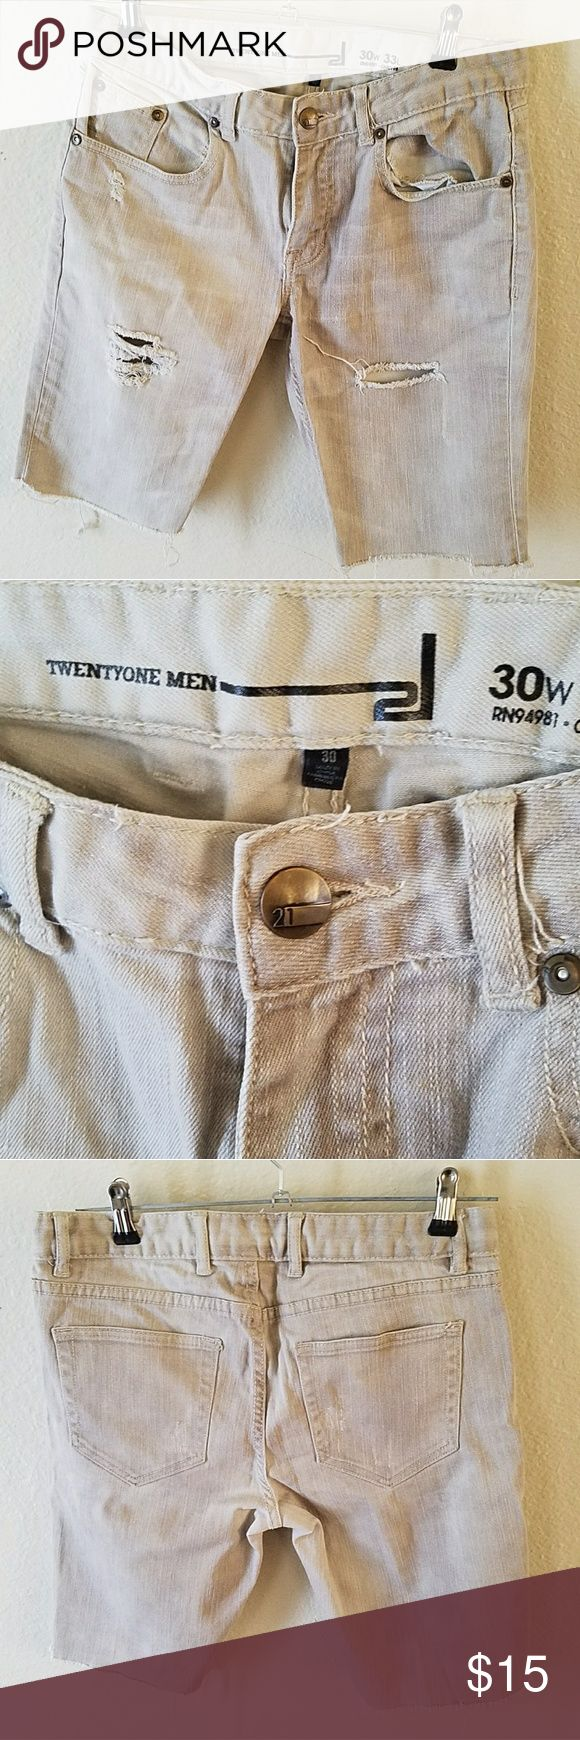 21 Men Cream Cut Off Denim Shorts Size 30 These used to be jeans and I just cut them up and distressed then a bit.  Great condition. Size 30 waist,  slim. 21men Shorts Jean Shorts